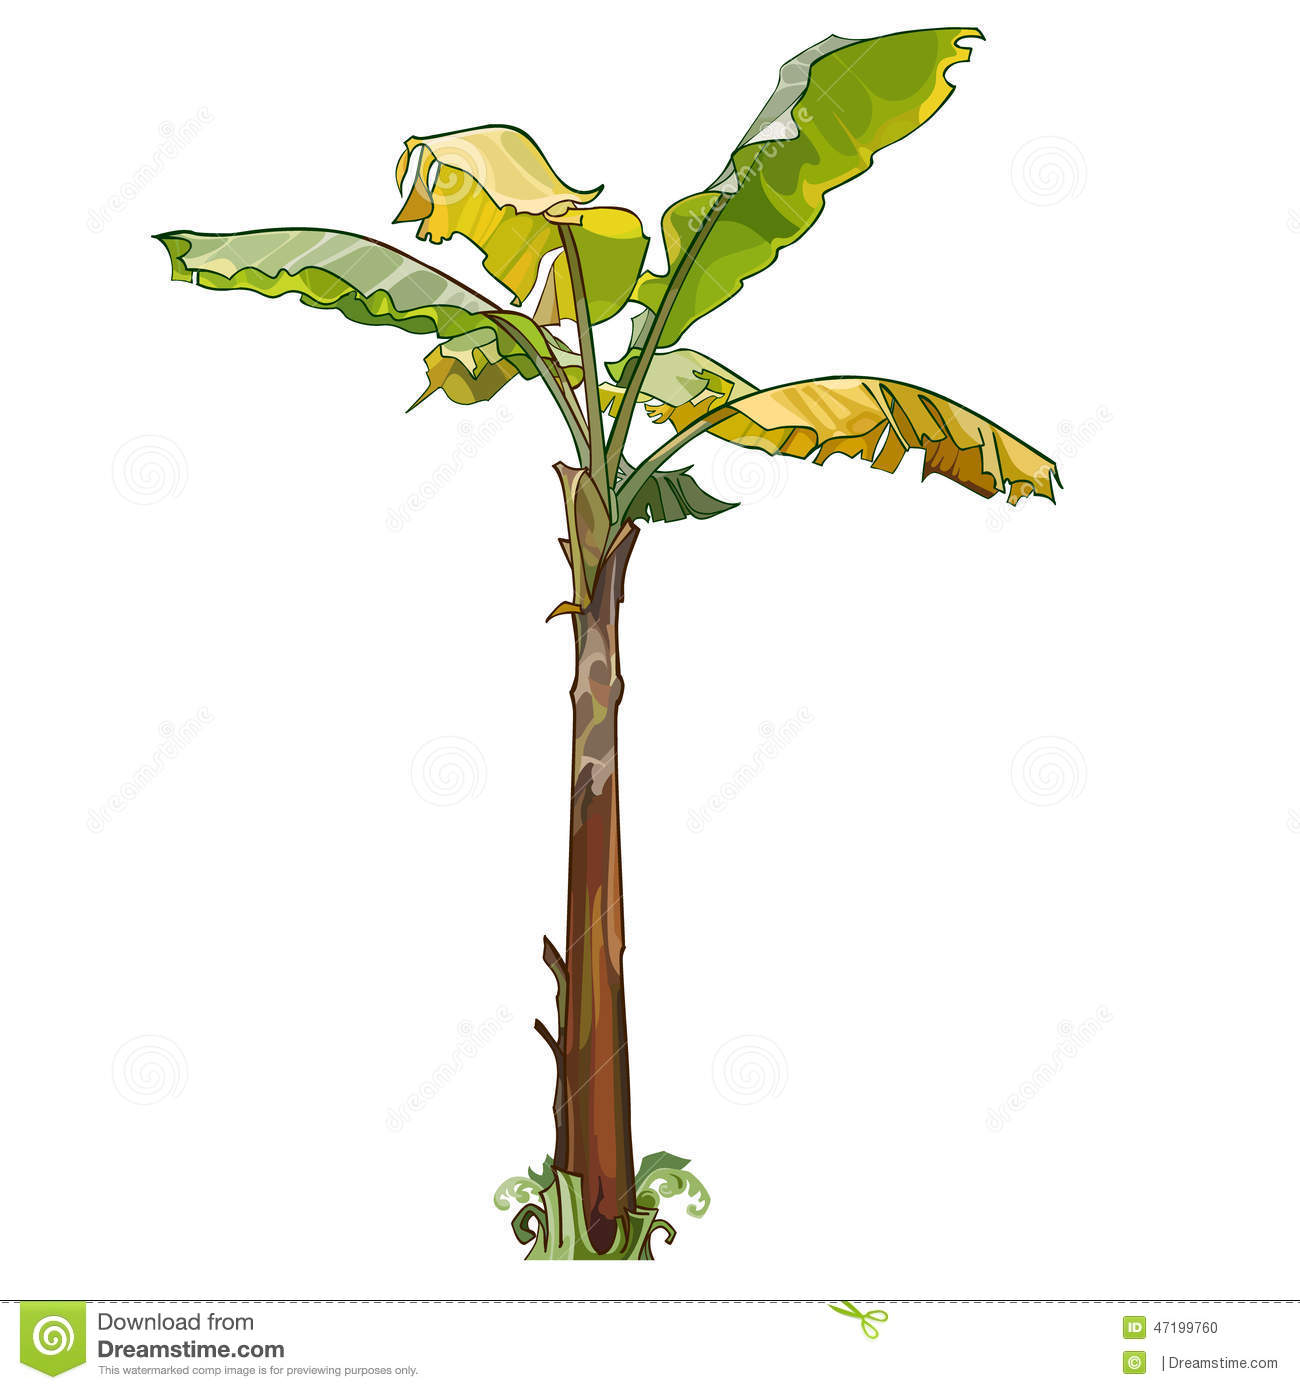 Palm Banana Tree With Yellow Leaves Stock Vector ...